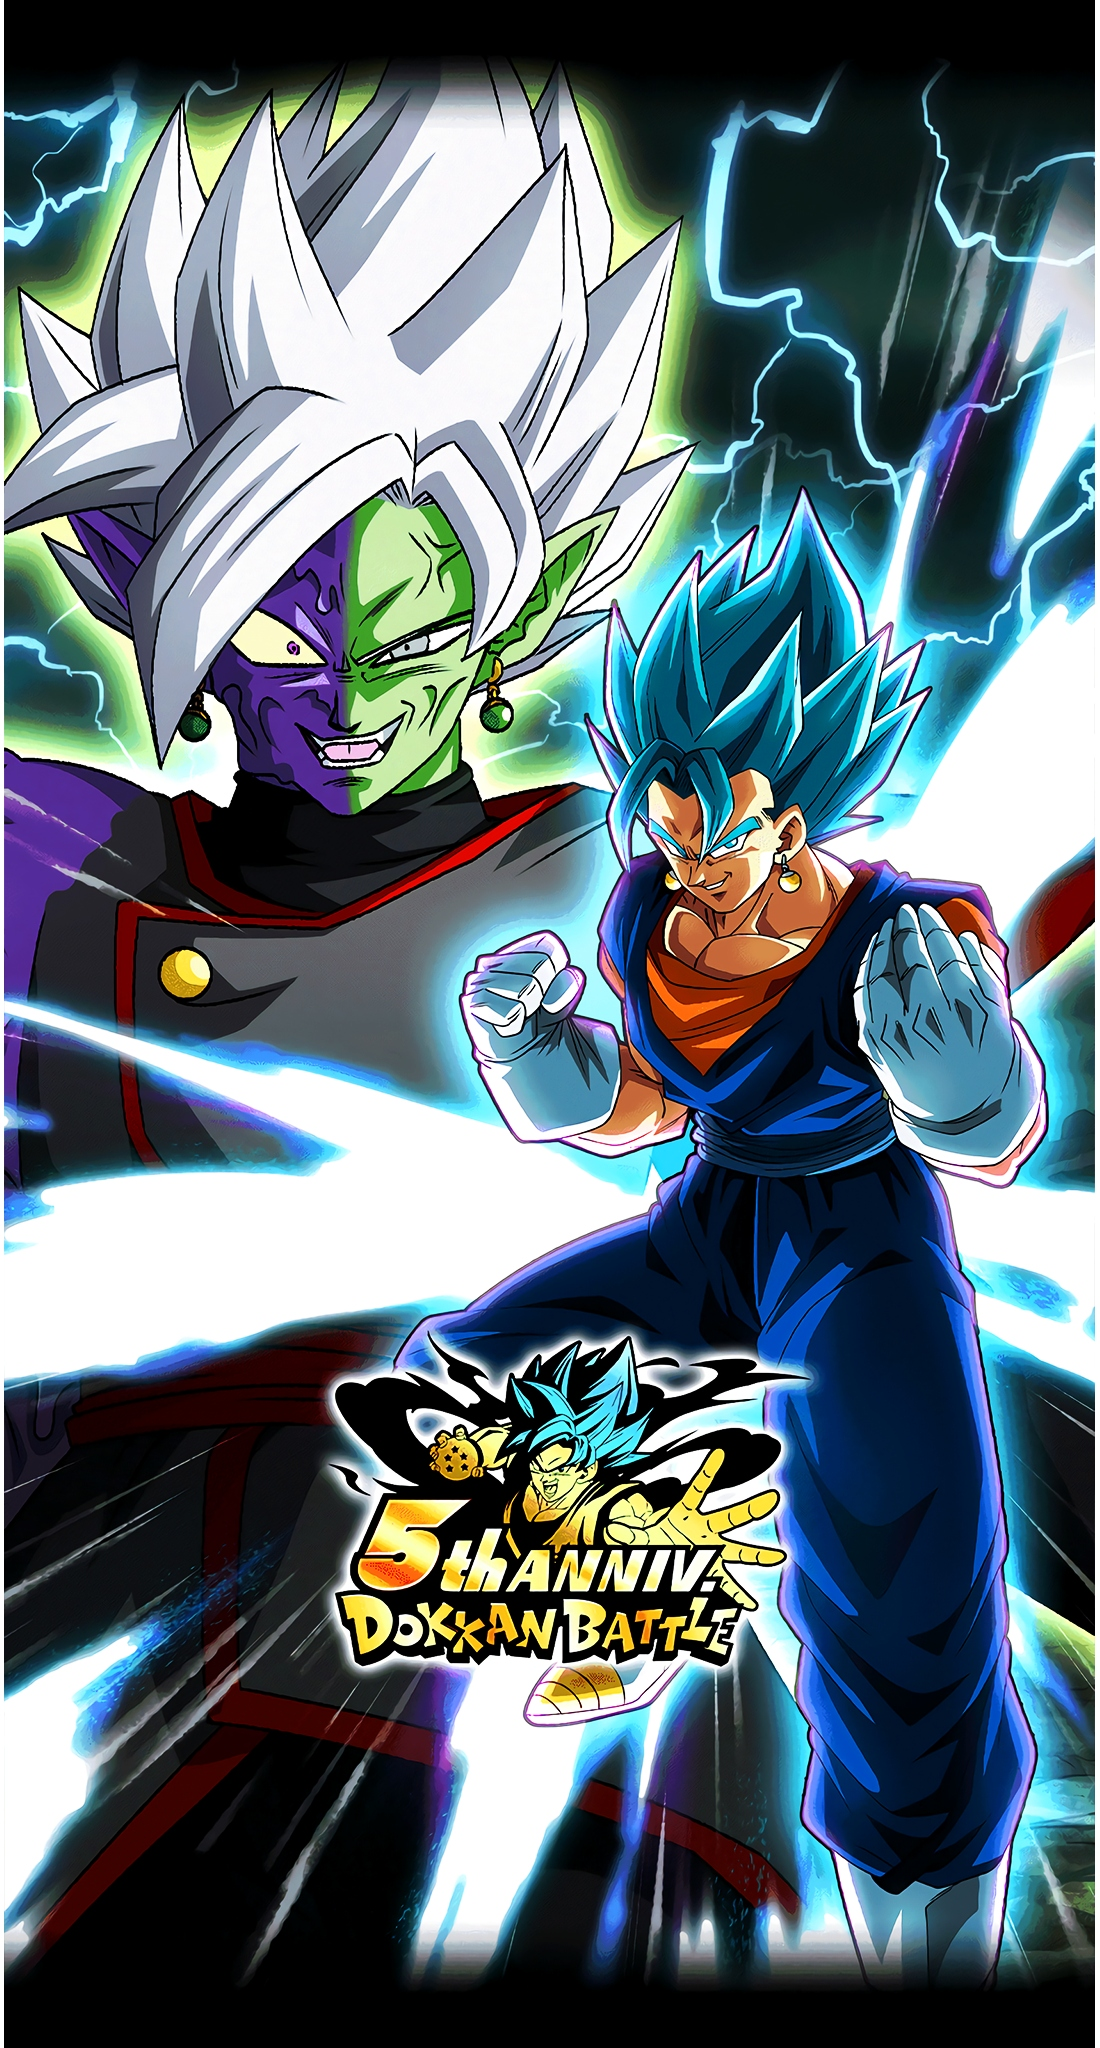 Fusion Zamasu vs Vegito Blue 5 Year Anniversary Art (Dragon Ball Z Dokkan Battle).jpg